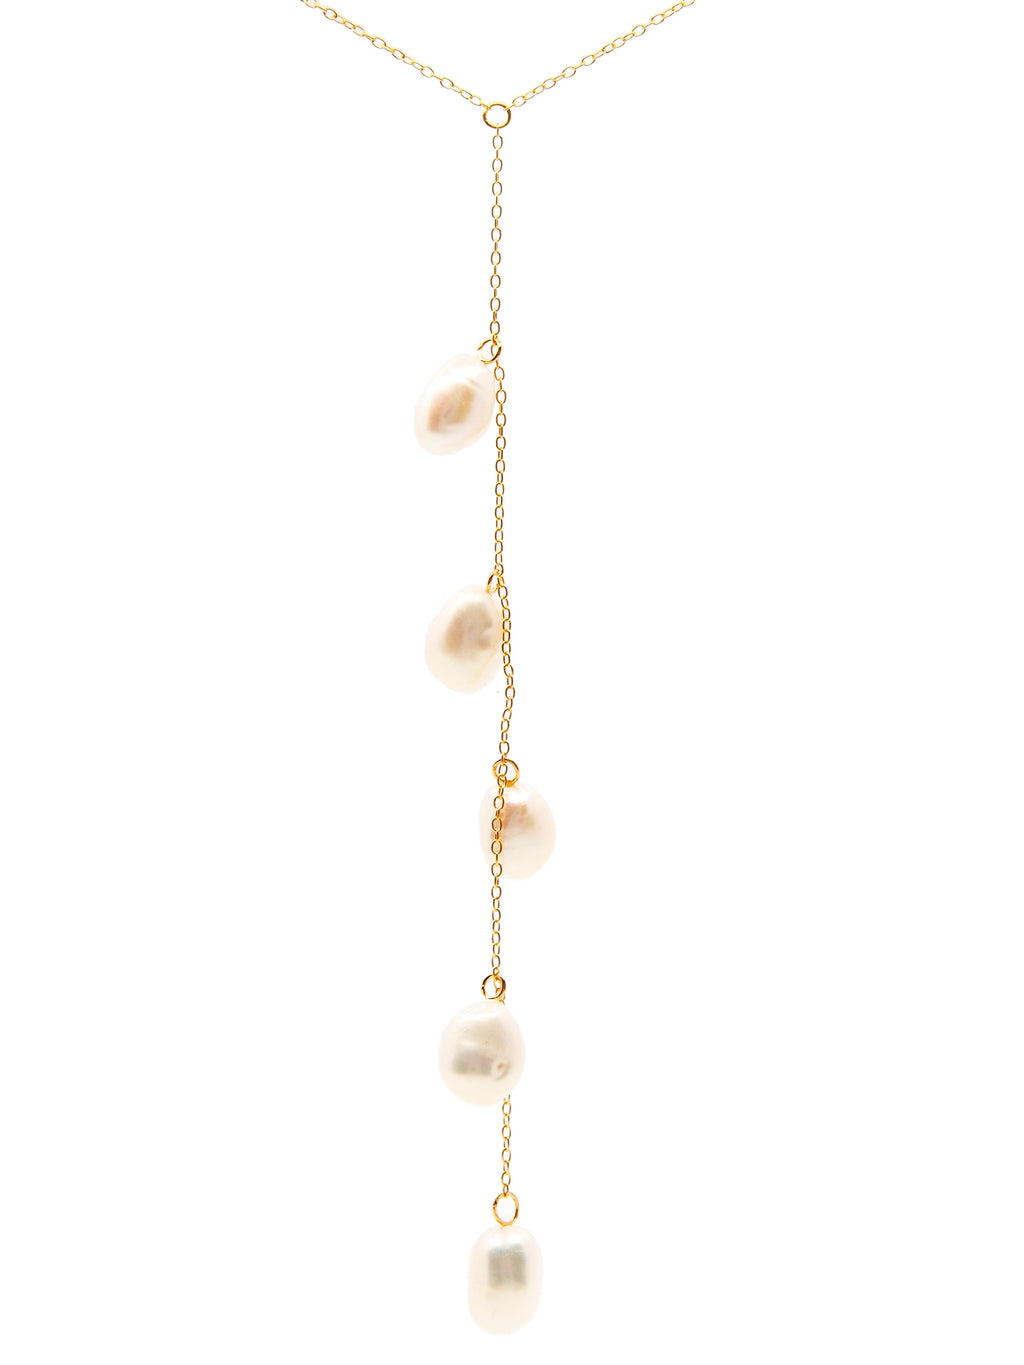 Cape Leveque baroque pearl drop necklace, sterling silver, yellow gold plated